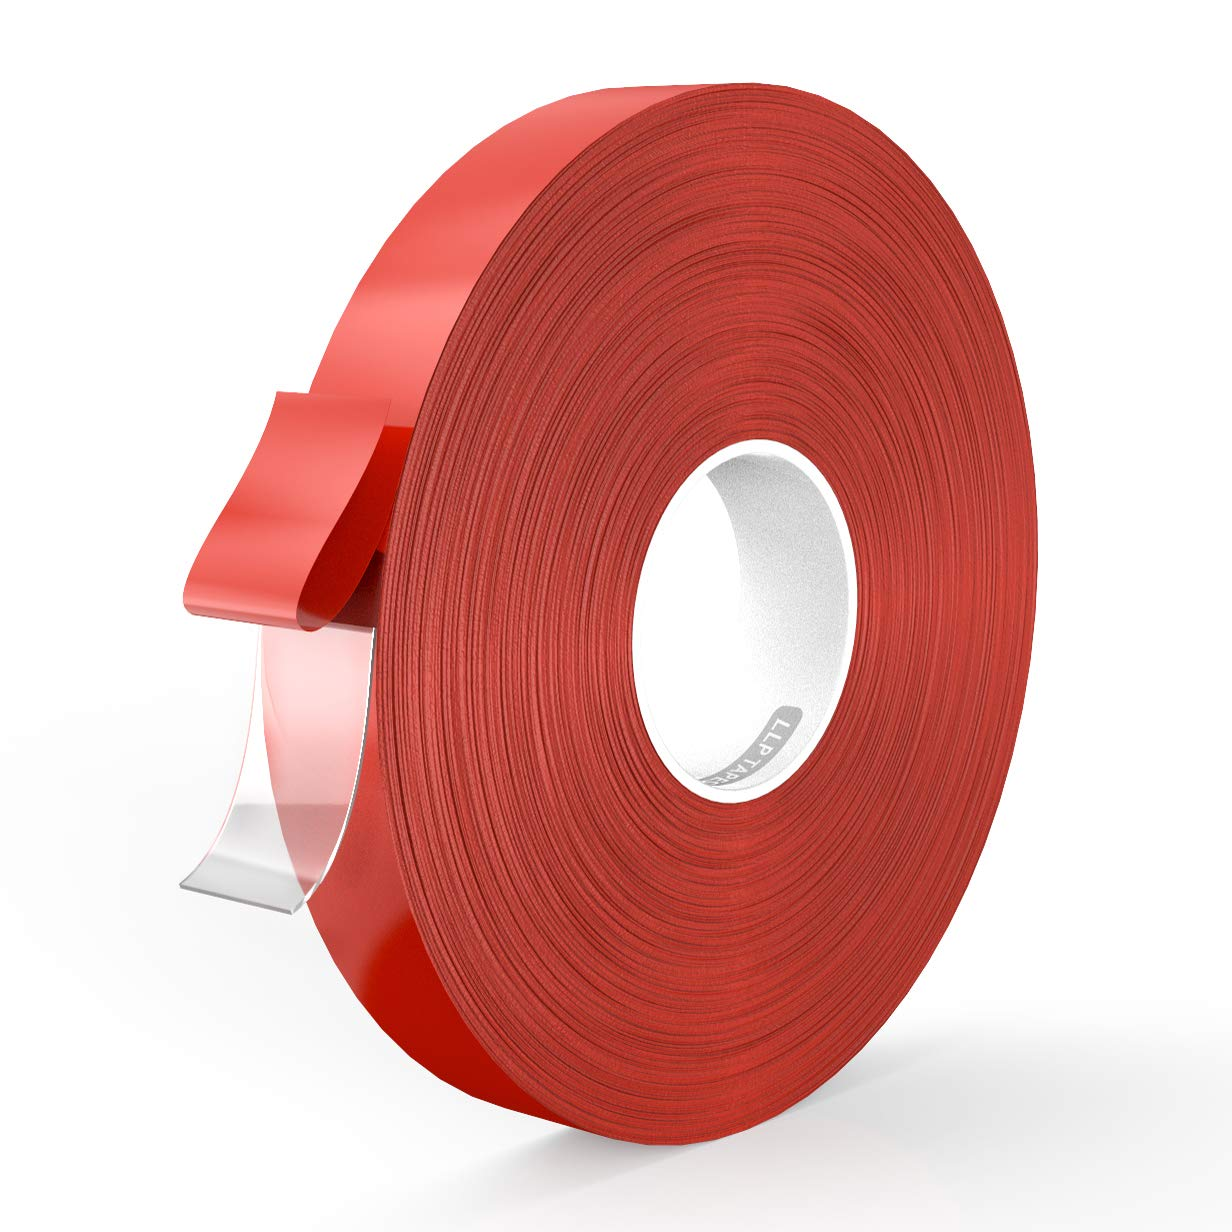 LLPT Double Sided Tape Acrylic Waterproof Removable Residue Free Strong Mounting Tape 0.8 Inch x 108 Feet Clear(AC0800)